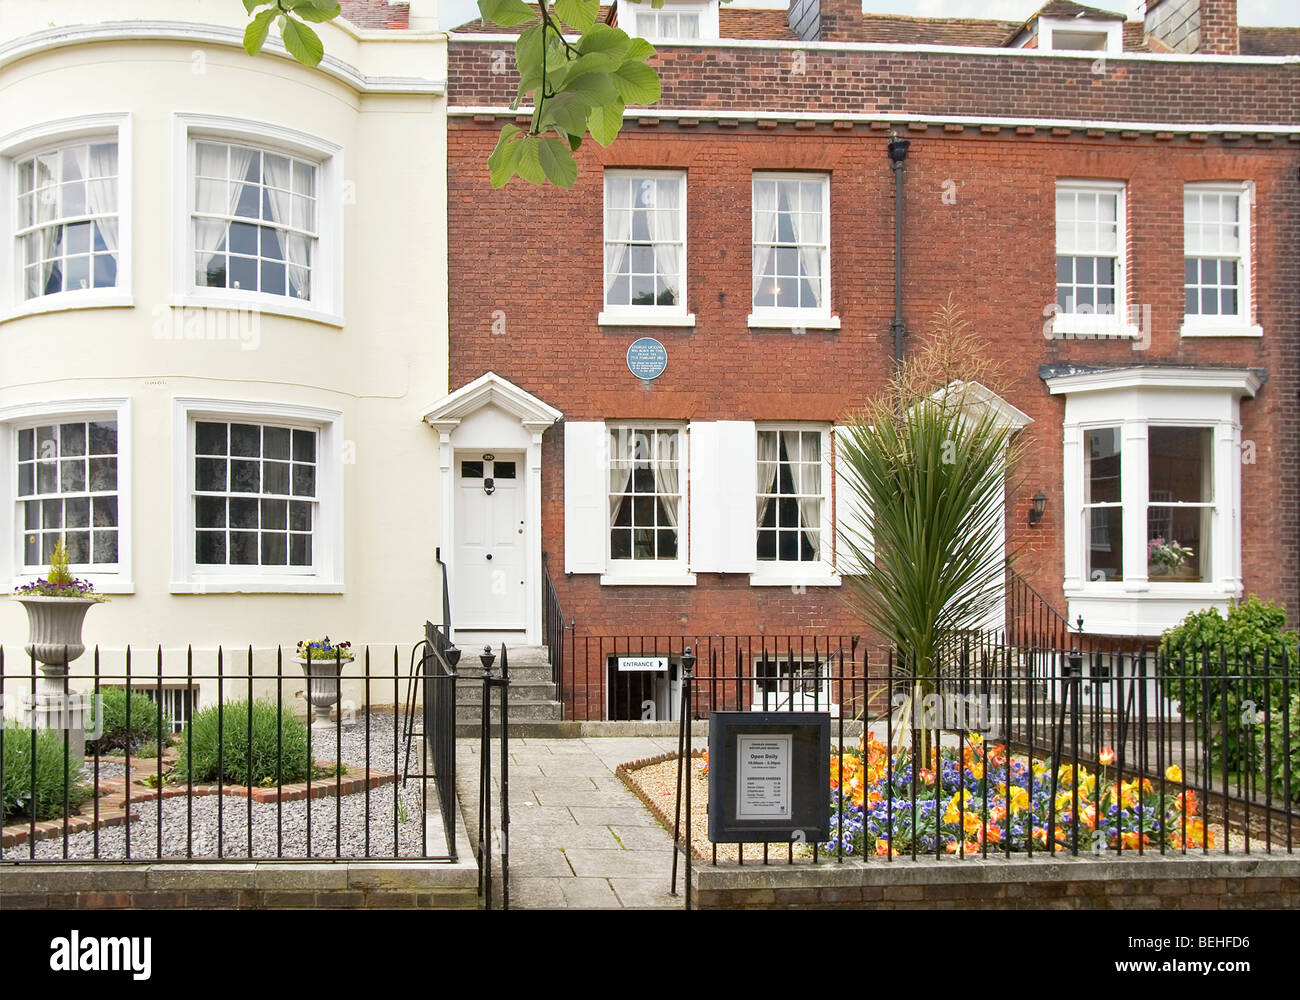 Charles Dickens Birth Place in Portsmouth, Hampshire, England, UK - Stock Image